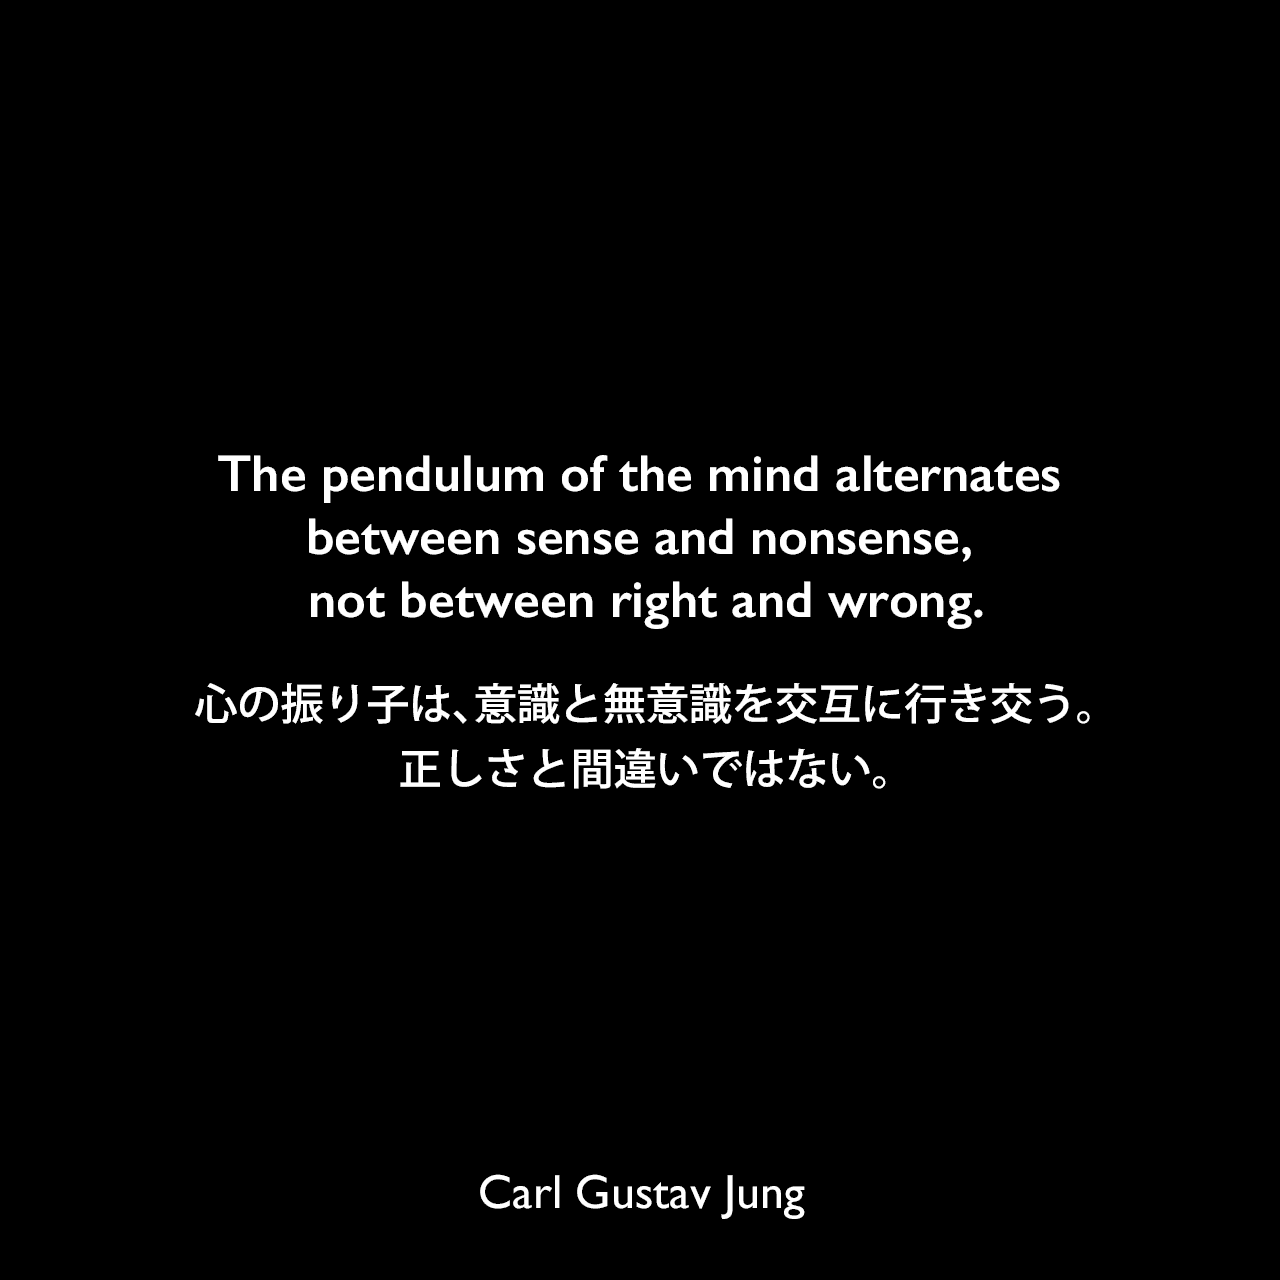 The pendulum of the mind alternates between sense and nonsense, not between right and wrong.心の振り子は、意識と無意識を交互に行き交う。正しさと間違いではない。Carl Gustav Jung